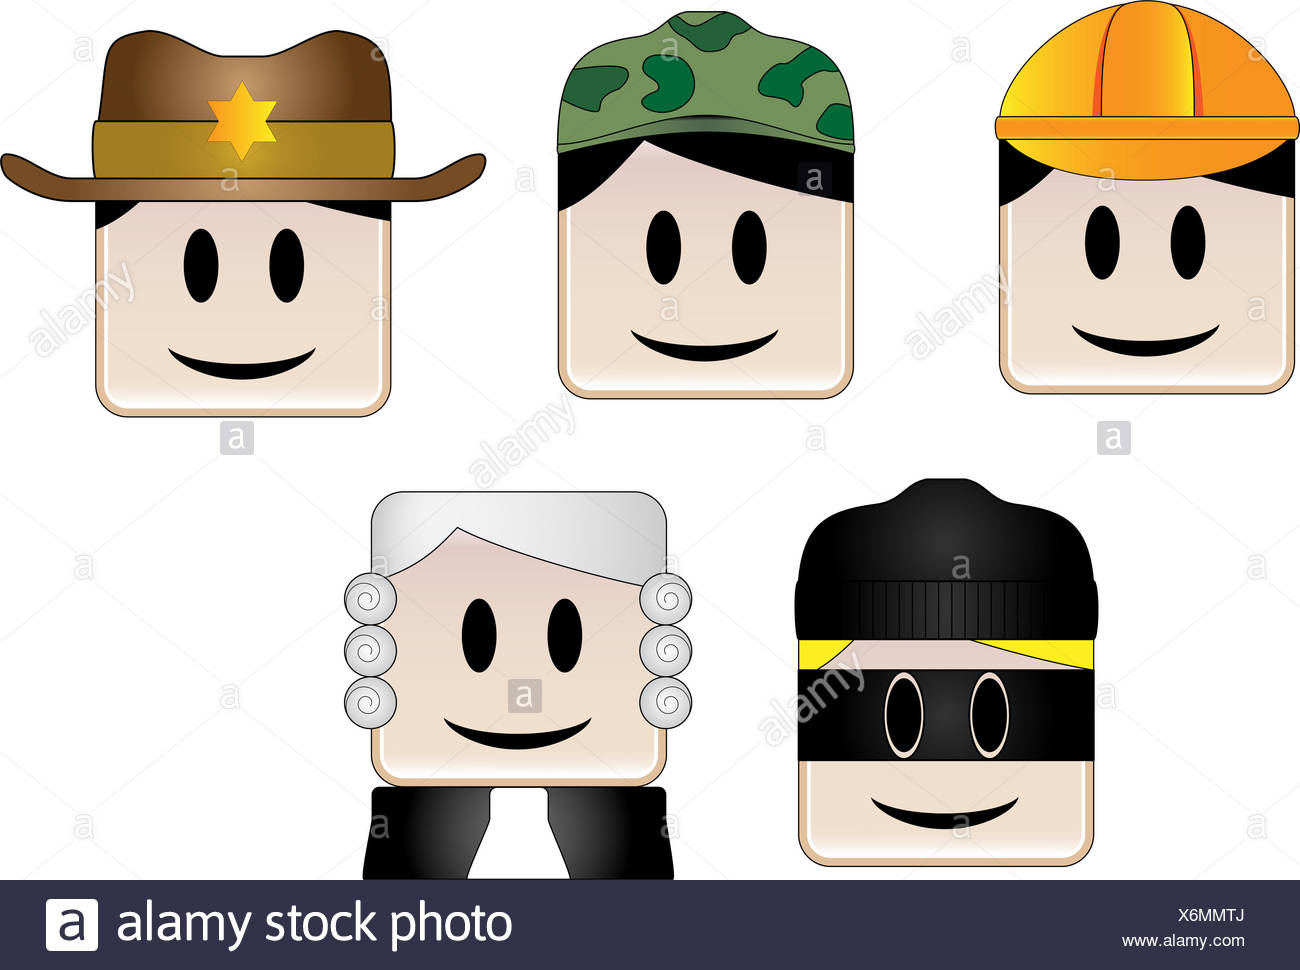 Set of images with random occupations Stock Photo